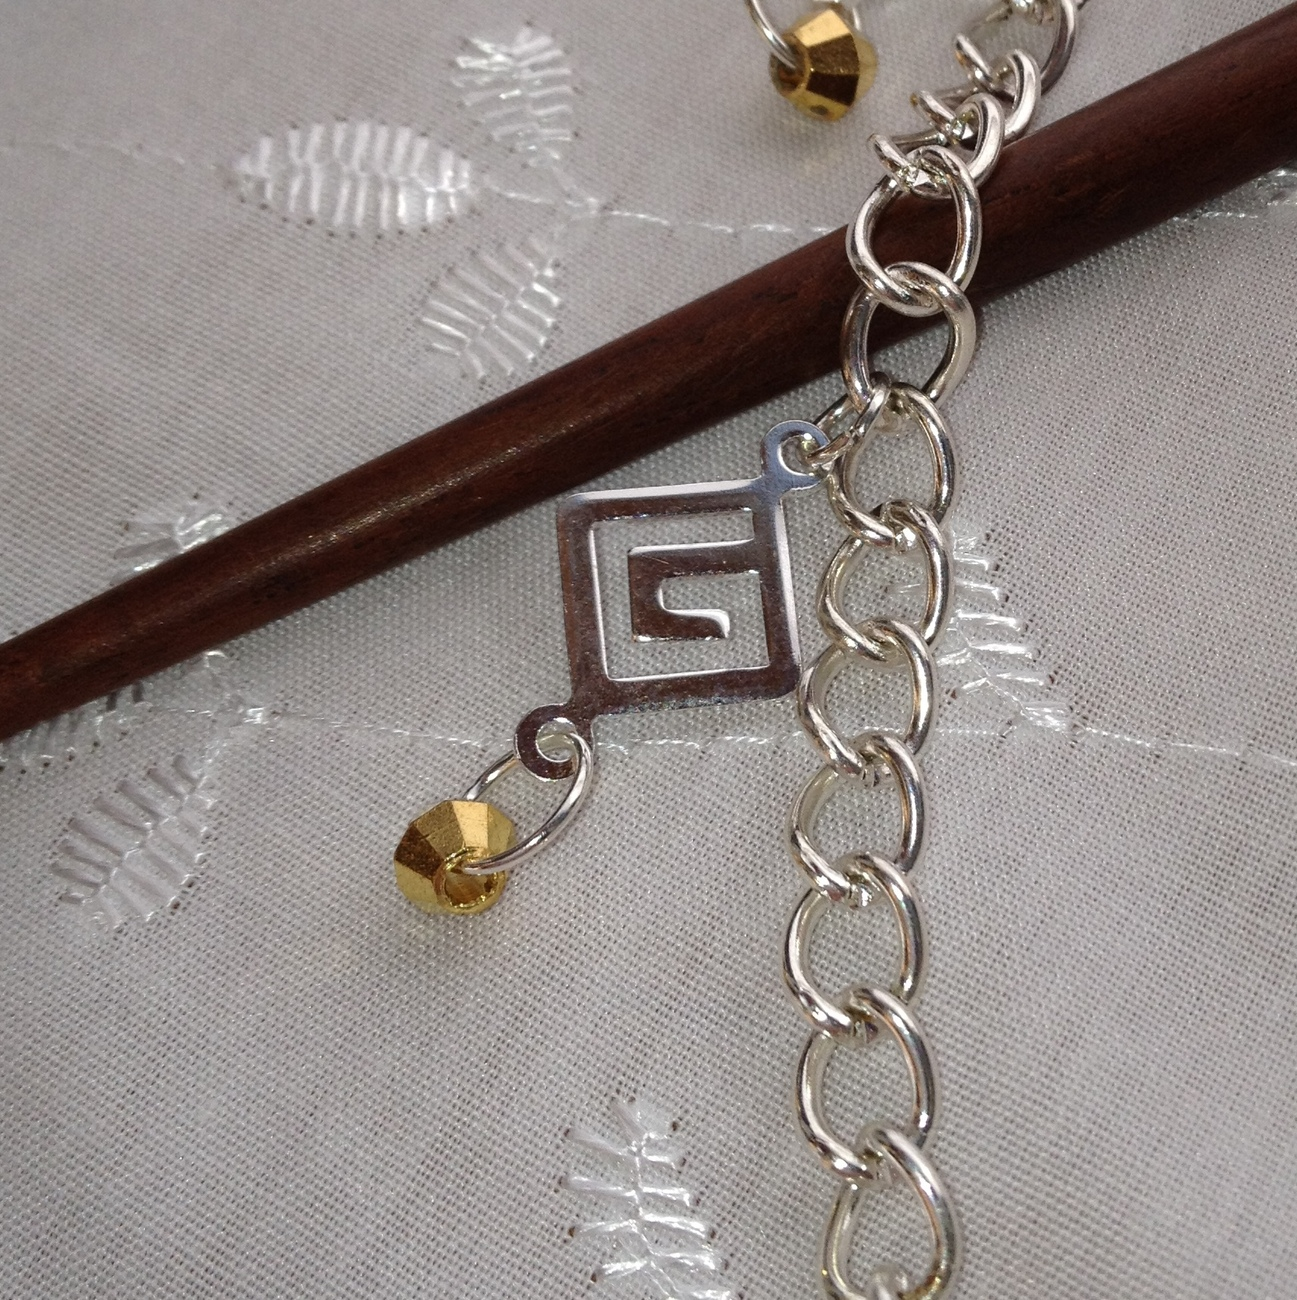 Pair of rosewood hair sticks linked by silvertone chain with charm dangles